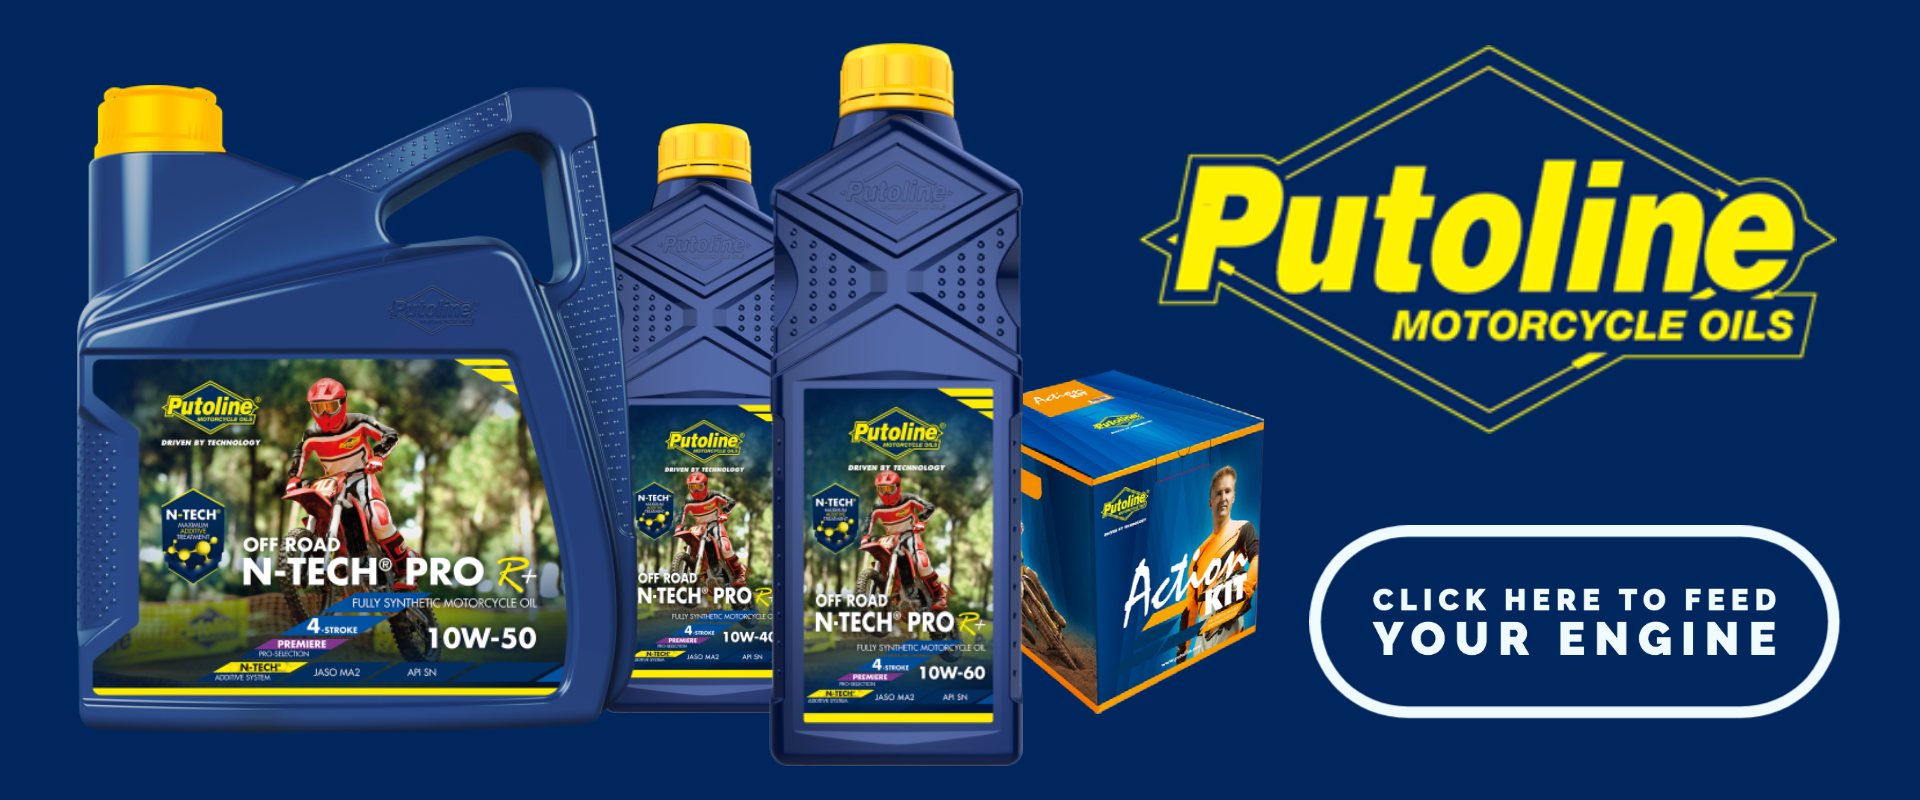 Putoline Motorcycle Oils and Cleaners